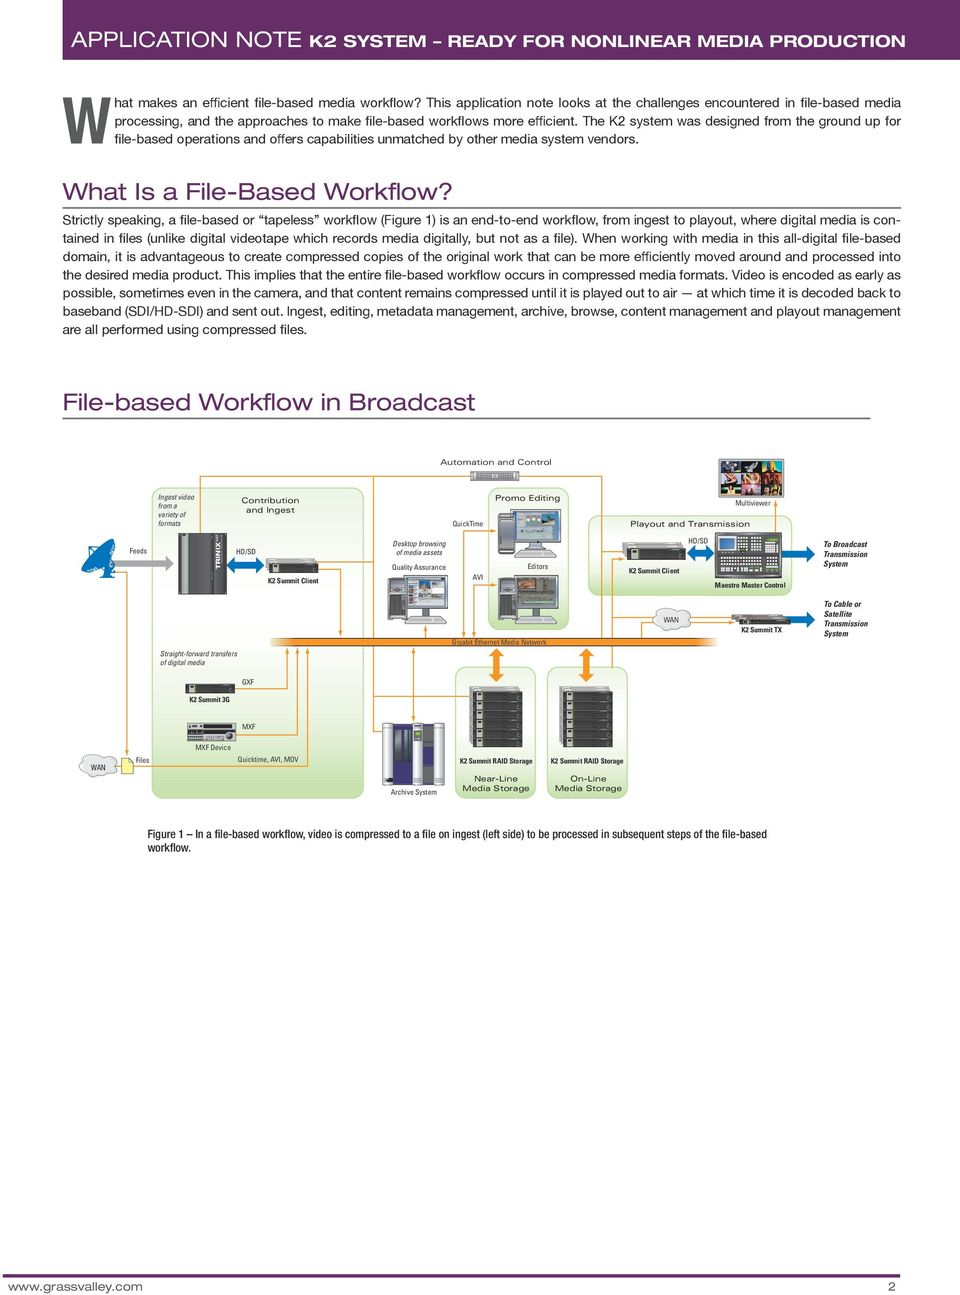 The K2 system was designed from the ground up for file-based operations and offers capabilities unmatched by other media system vendors. What Is a File-Based Workflow?